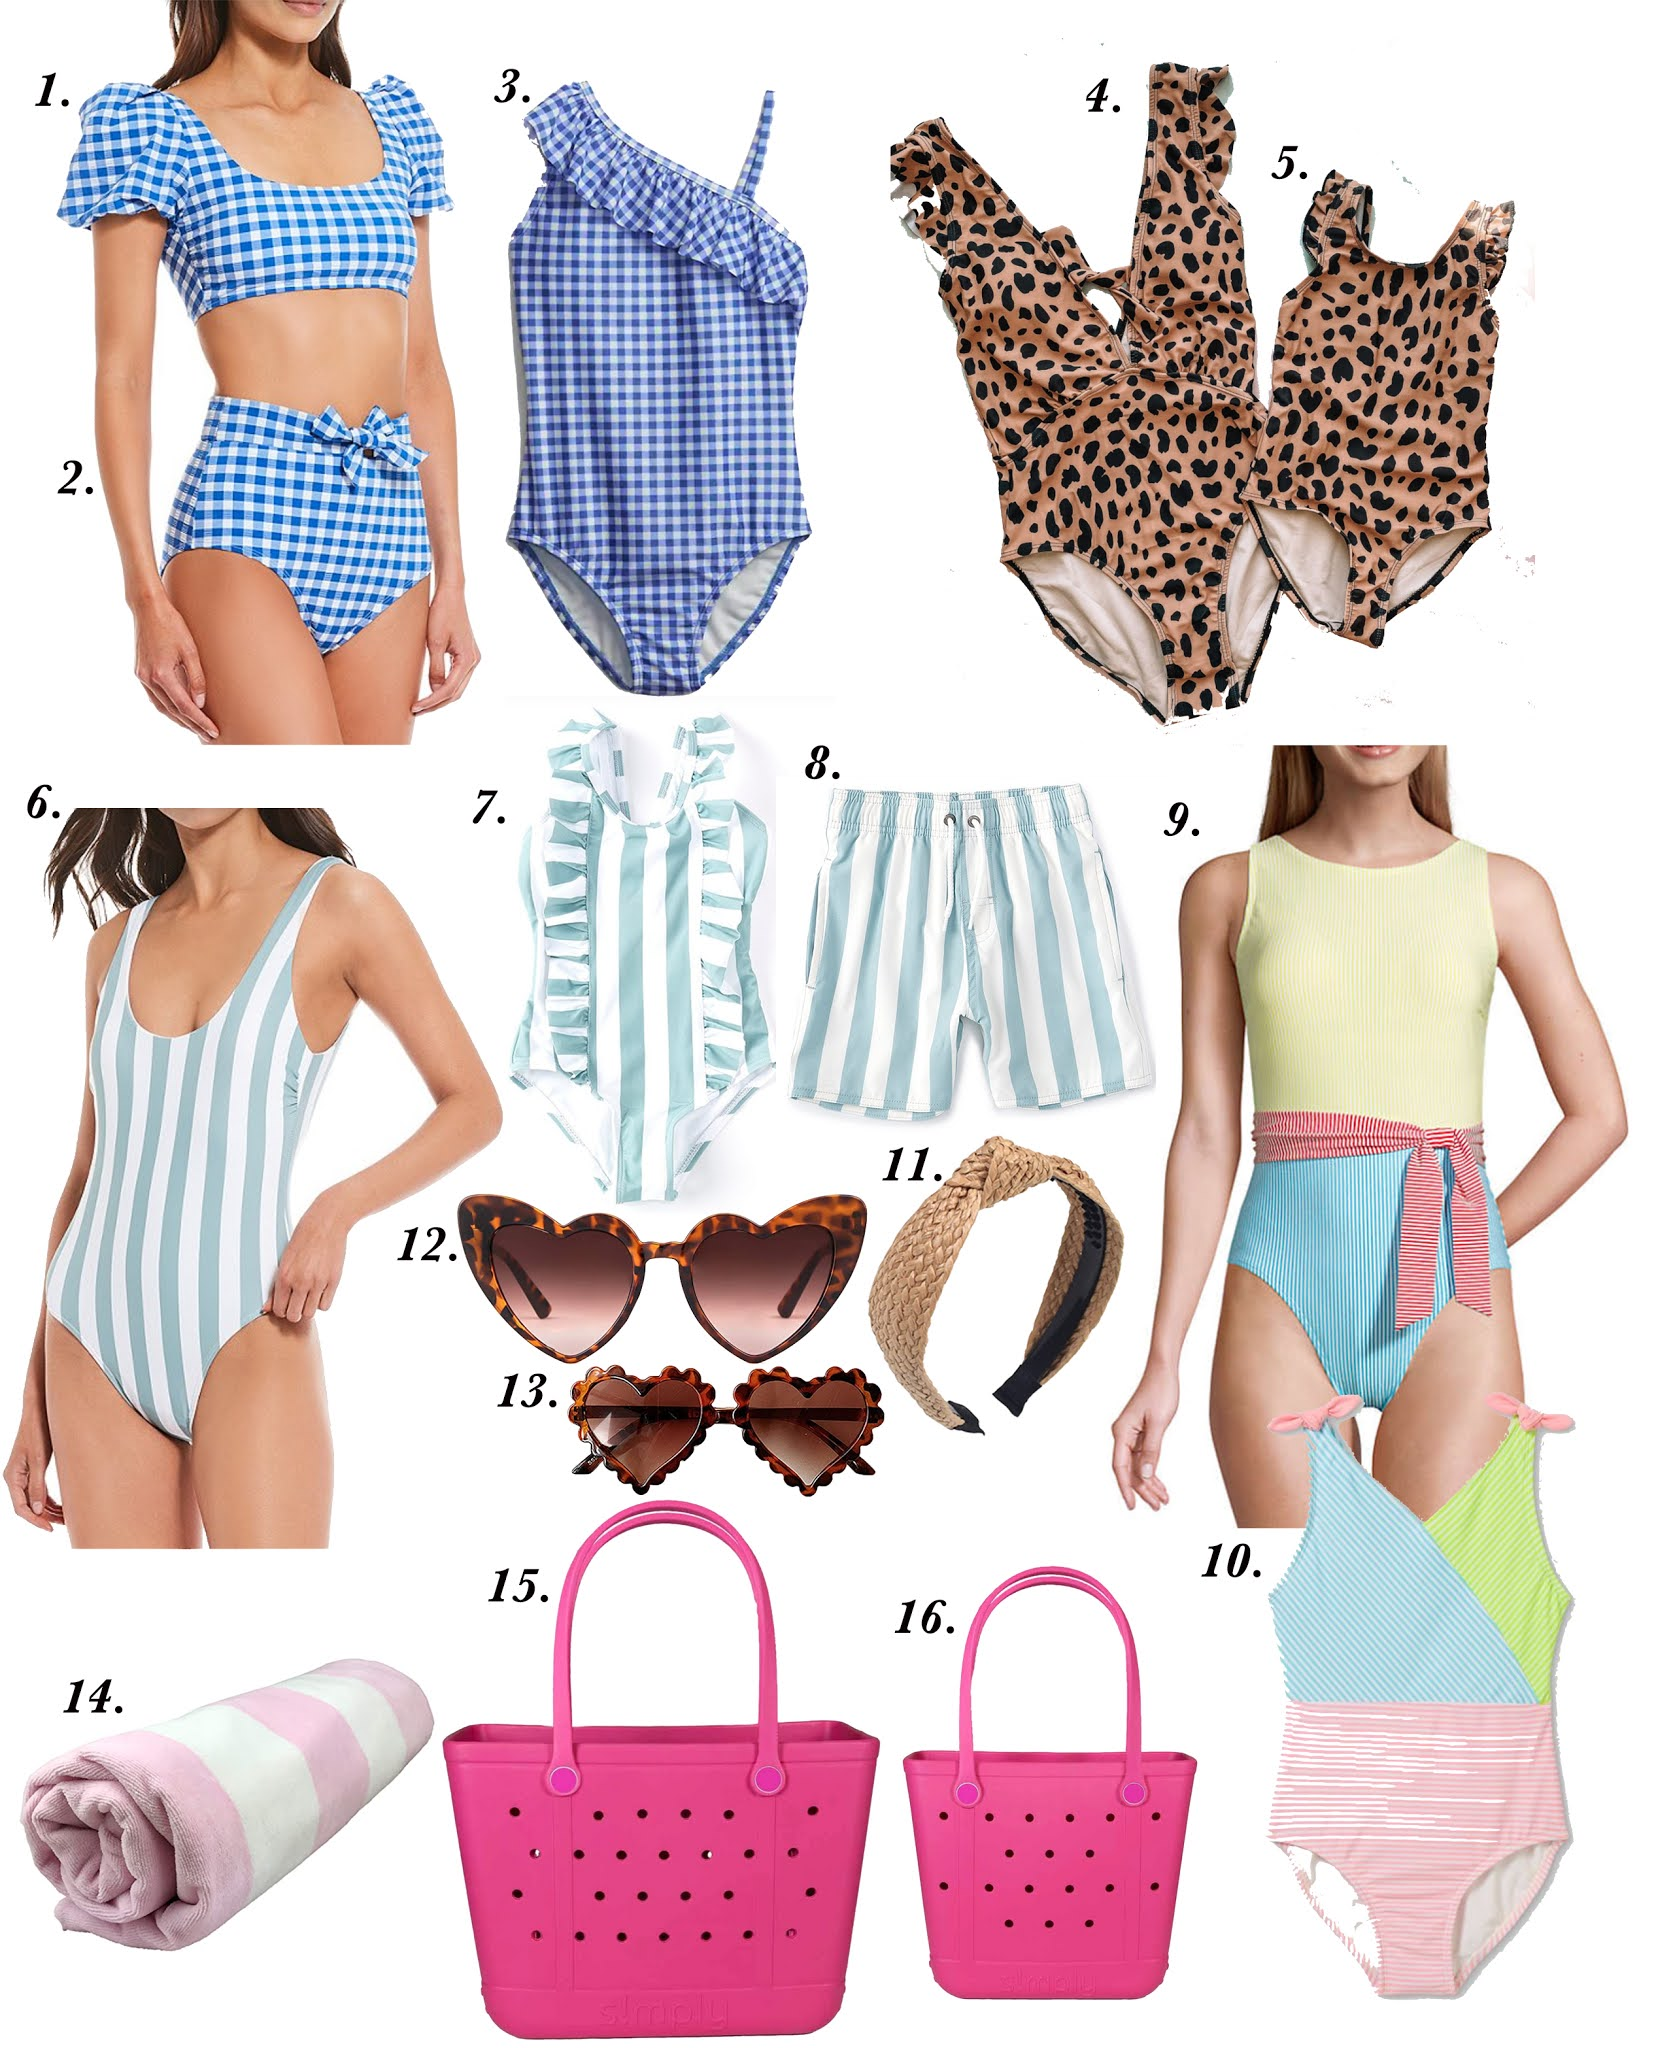 Cute New Spring Arrivals For You And/Or Your Mini - Something Delightful Blog